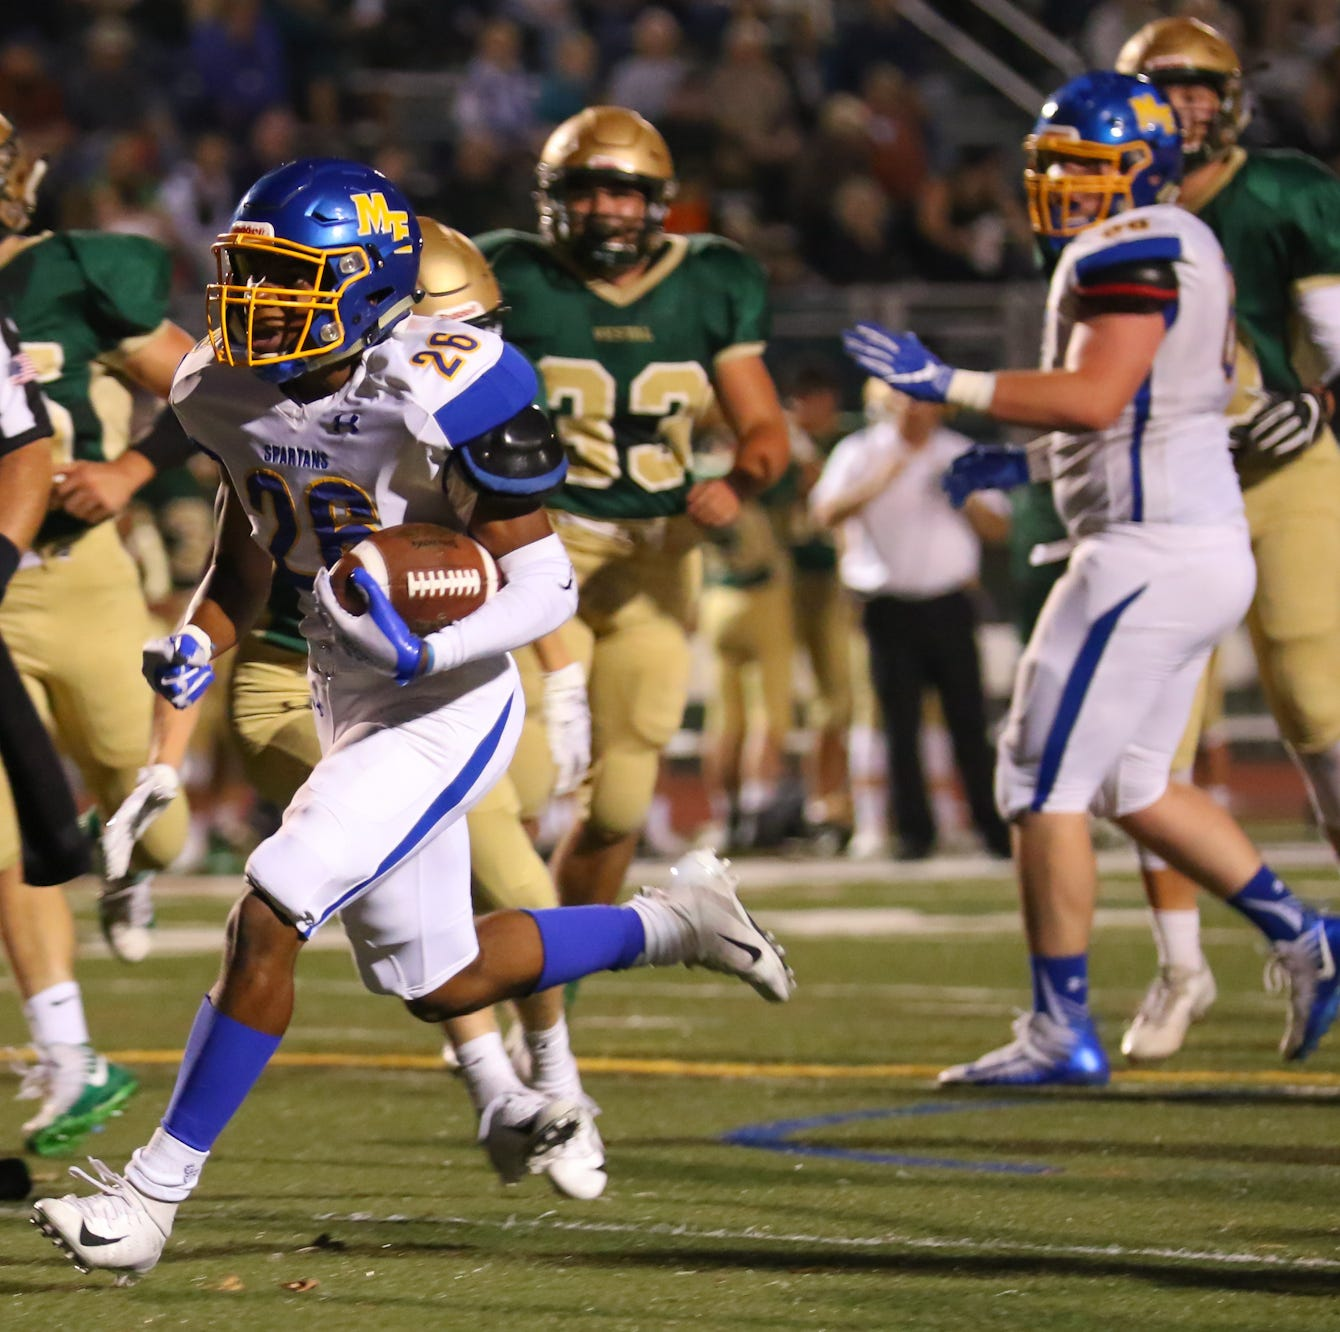 H.S. Football: M-E earns 38-32 victory at Vestal